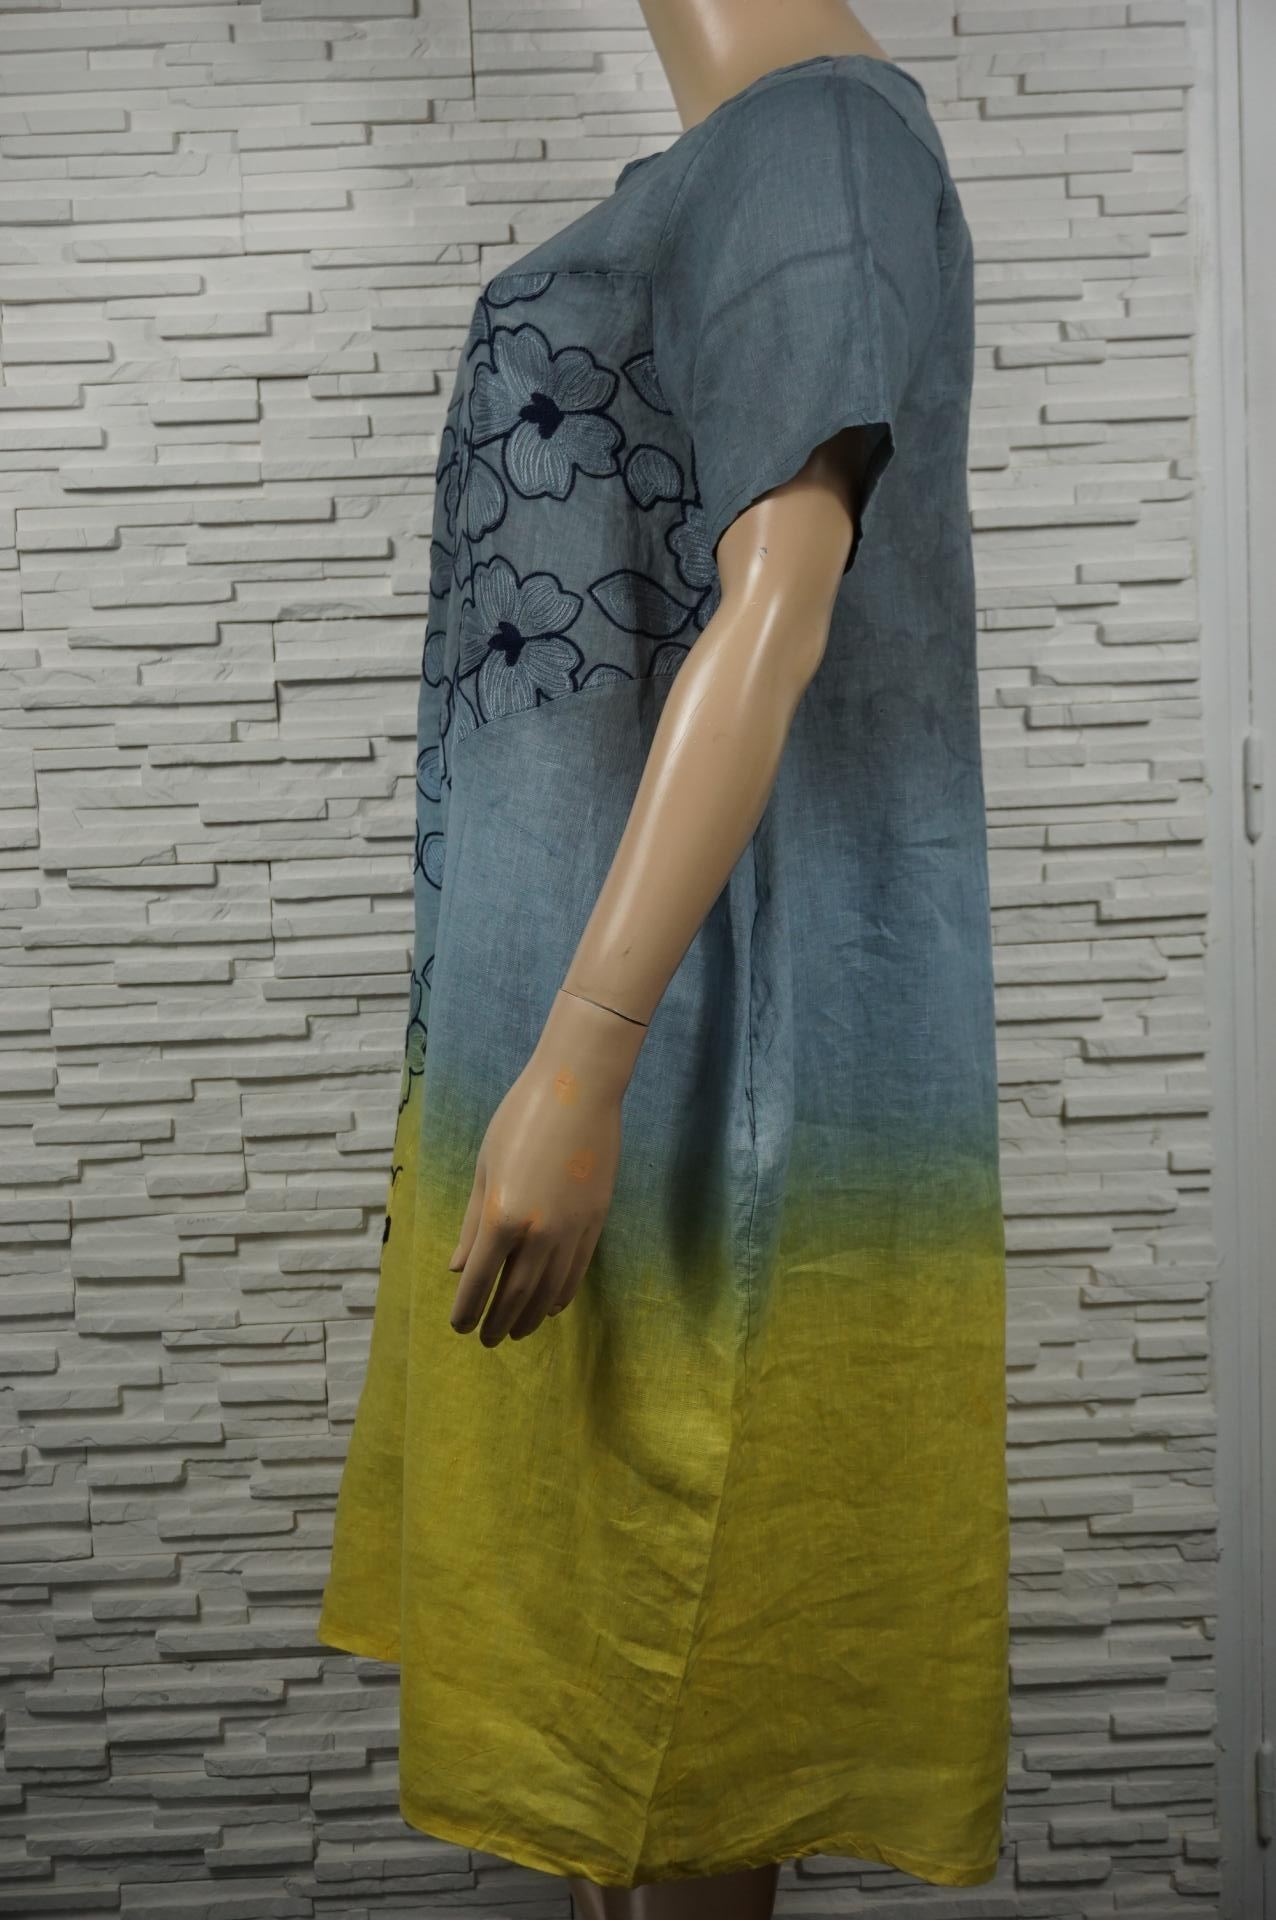 Robe longue lin tie and dye avec broderies florales.